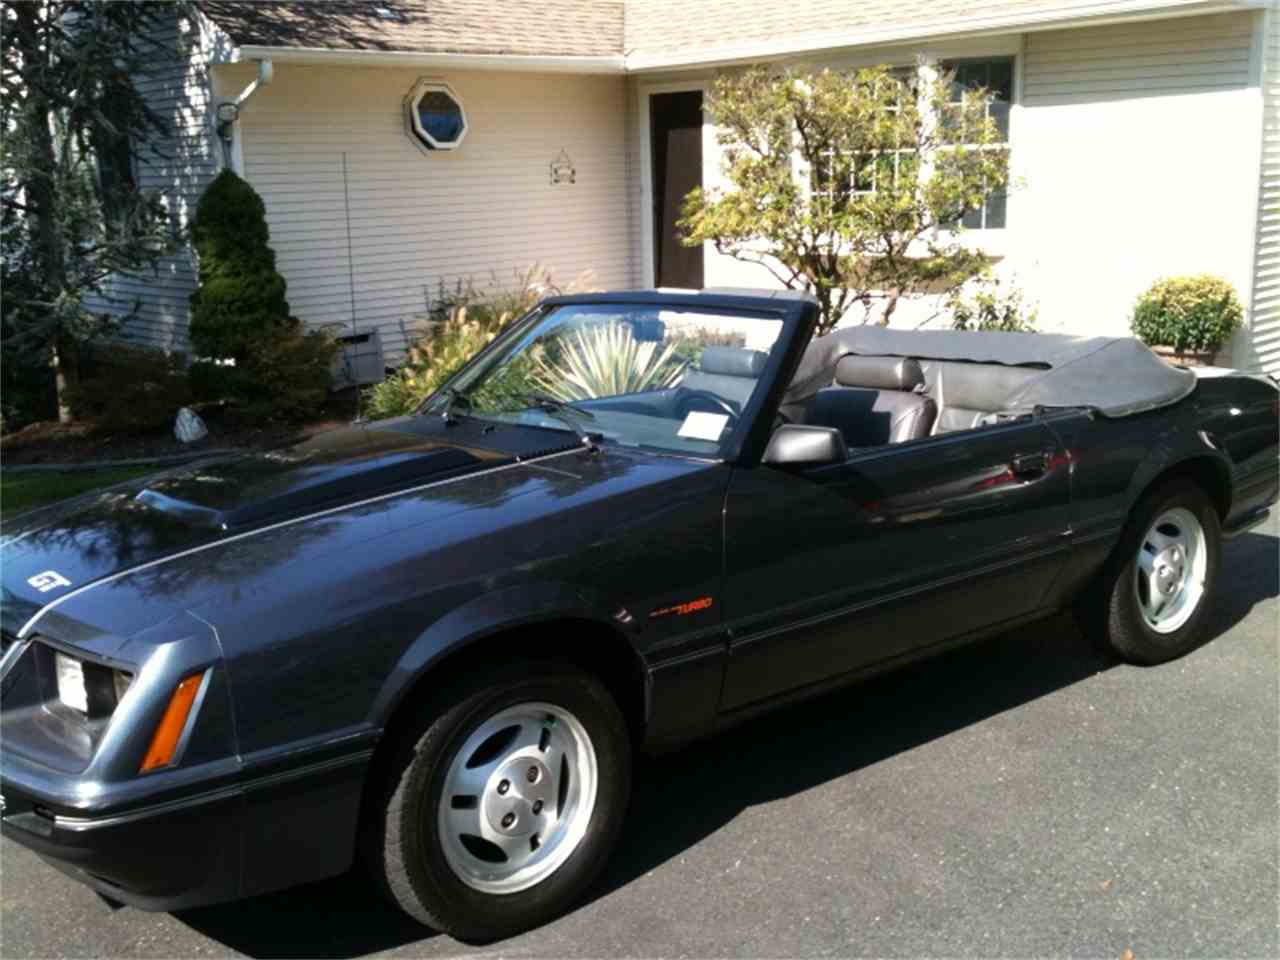 Picture of 1984 ford mustang gt350 exterior - 1984 Ford Mustang Gt 973461